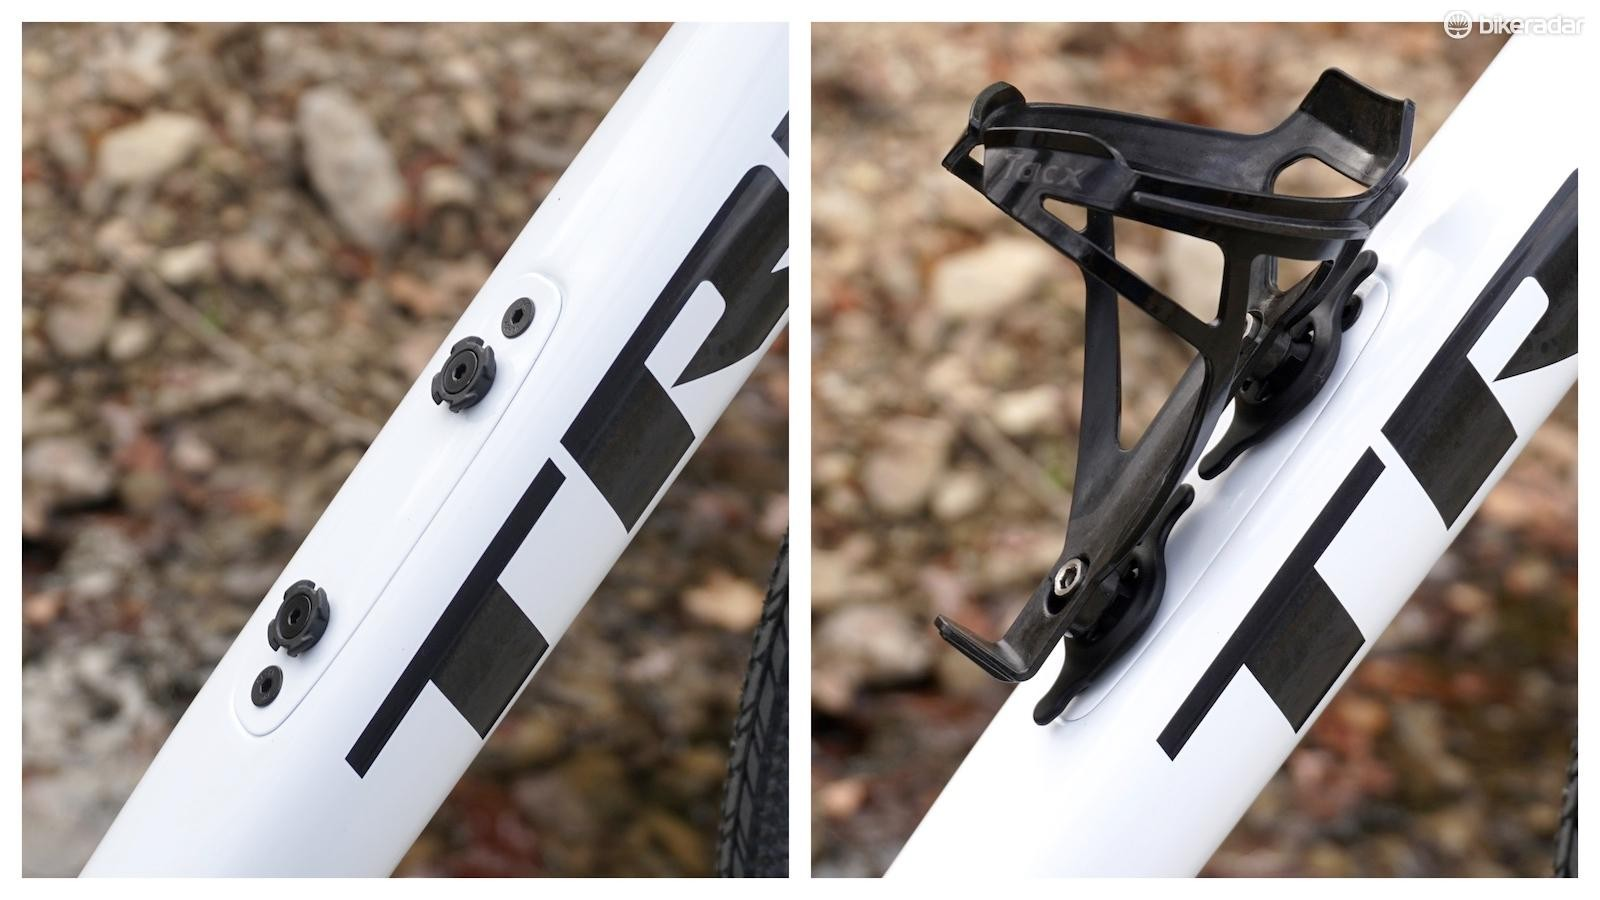 Clever indeed — the bespoke 'CrossLock' bottle cage system means easy-on, easy-off for hydration